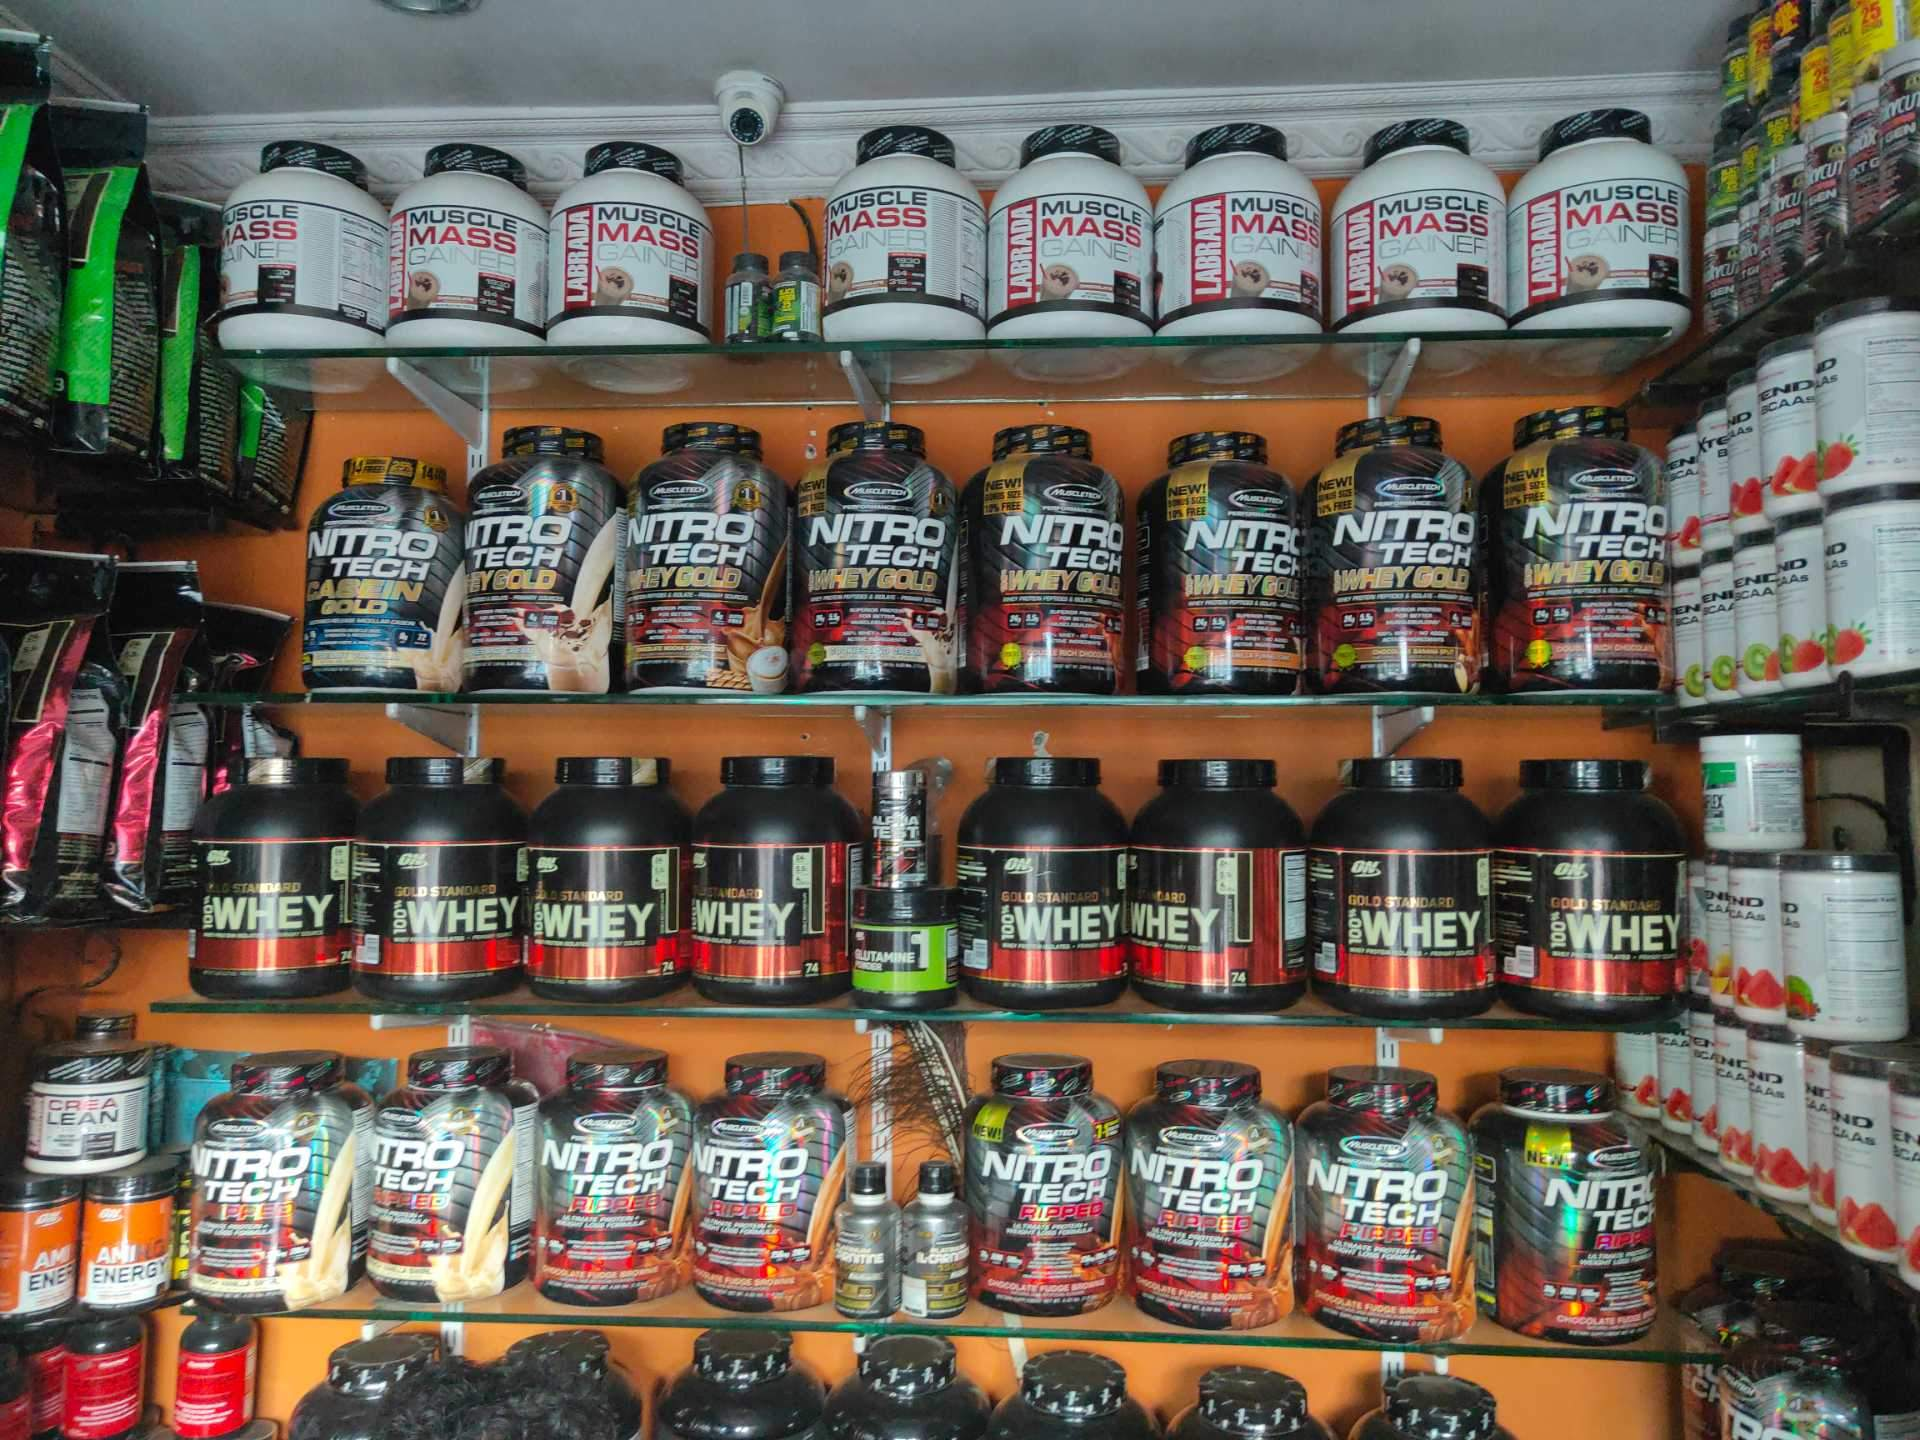 The Mixture Of Exercise Diet And Weight Loss Supplement Physical Exercise & Health